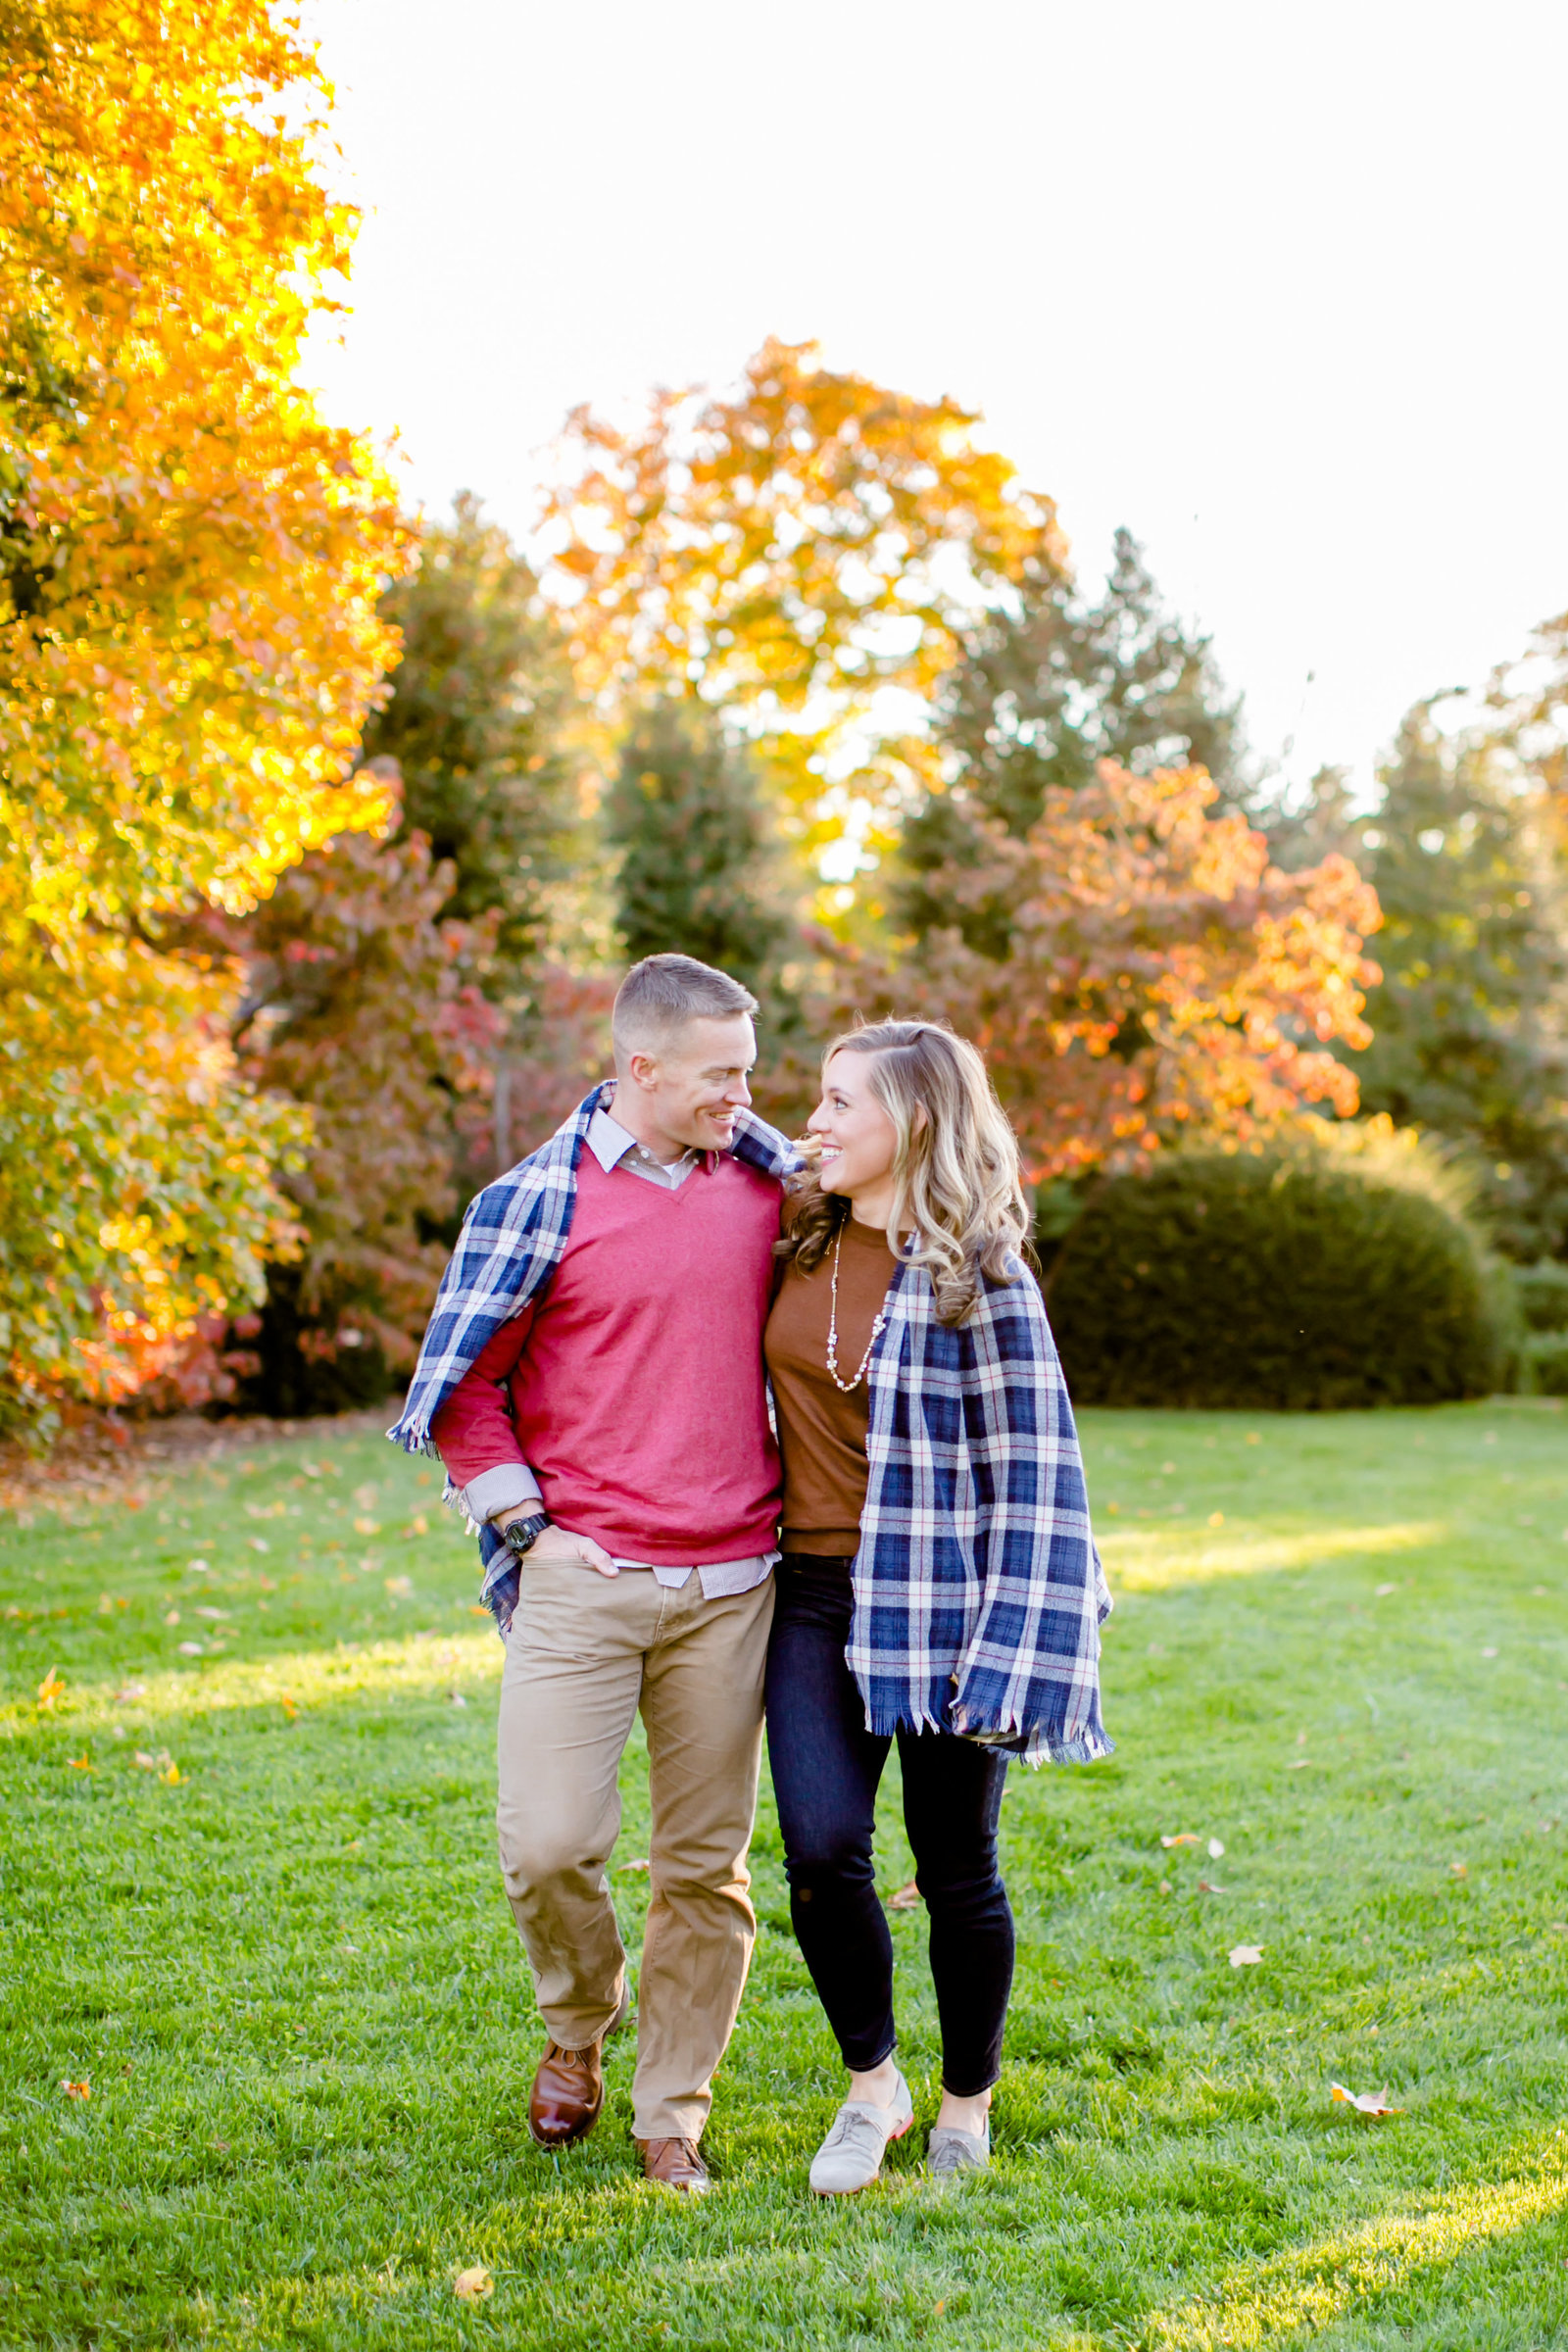 Carley Rehberg Photography - Engagement Photographer - Photo - 26